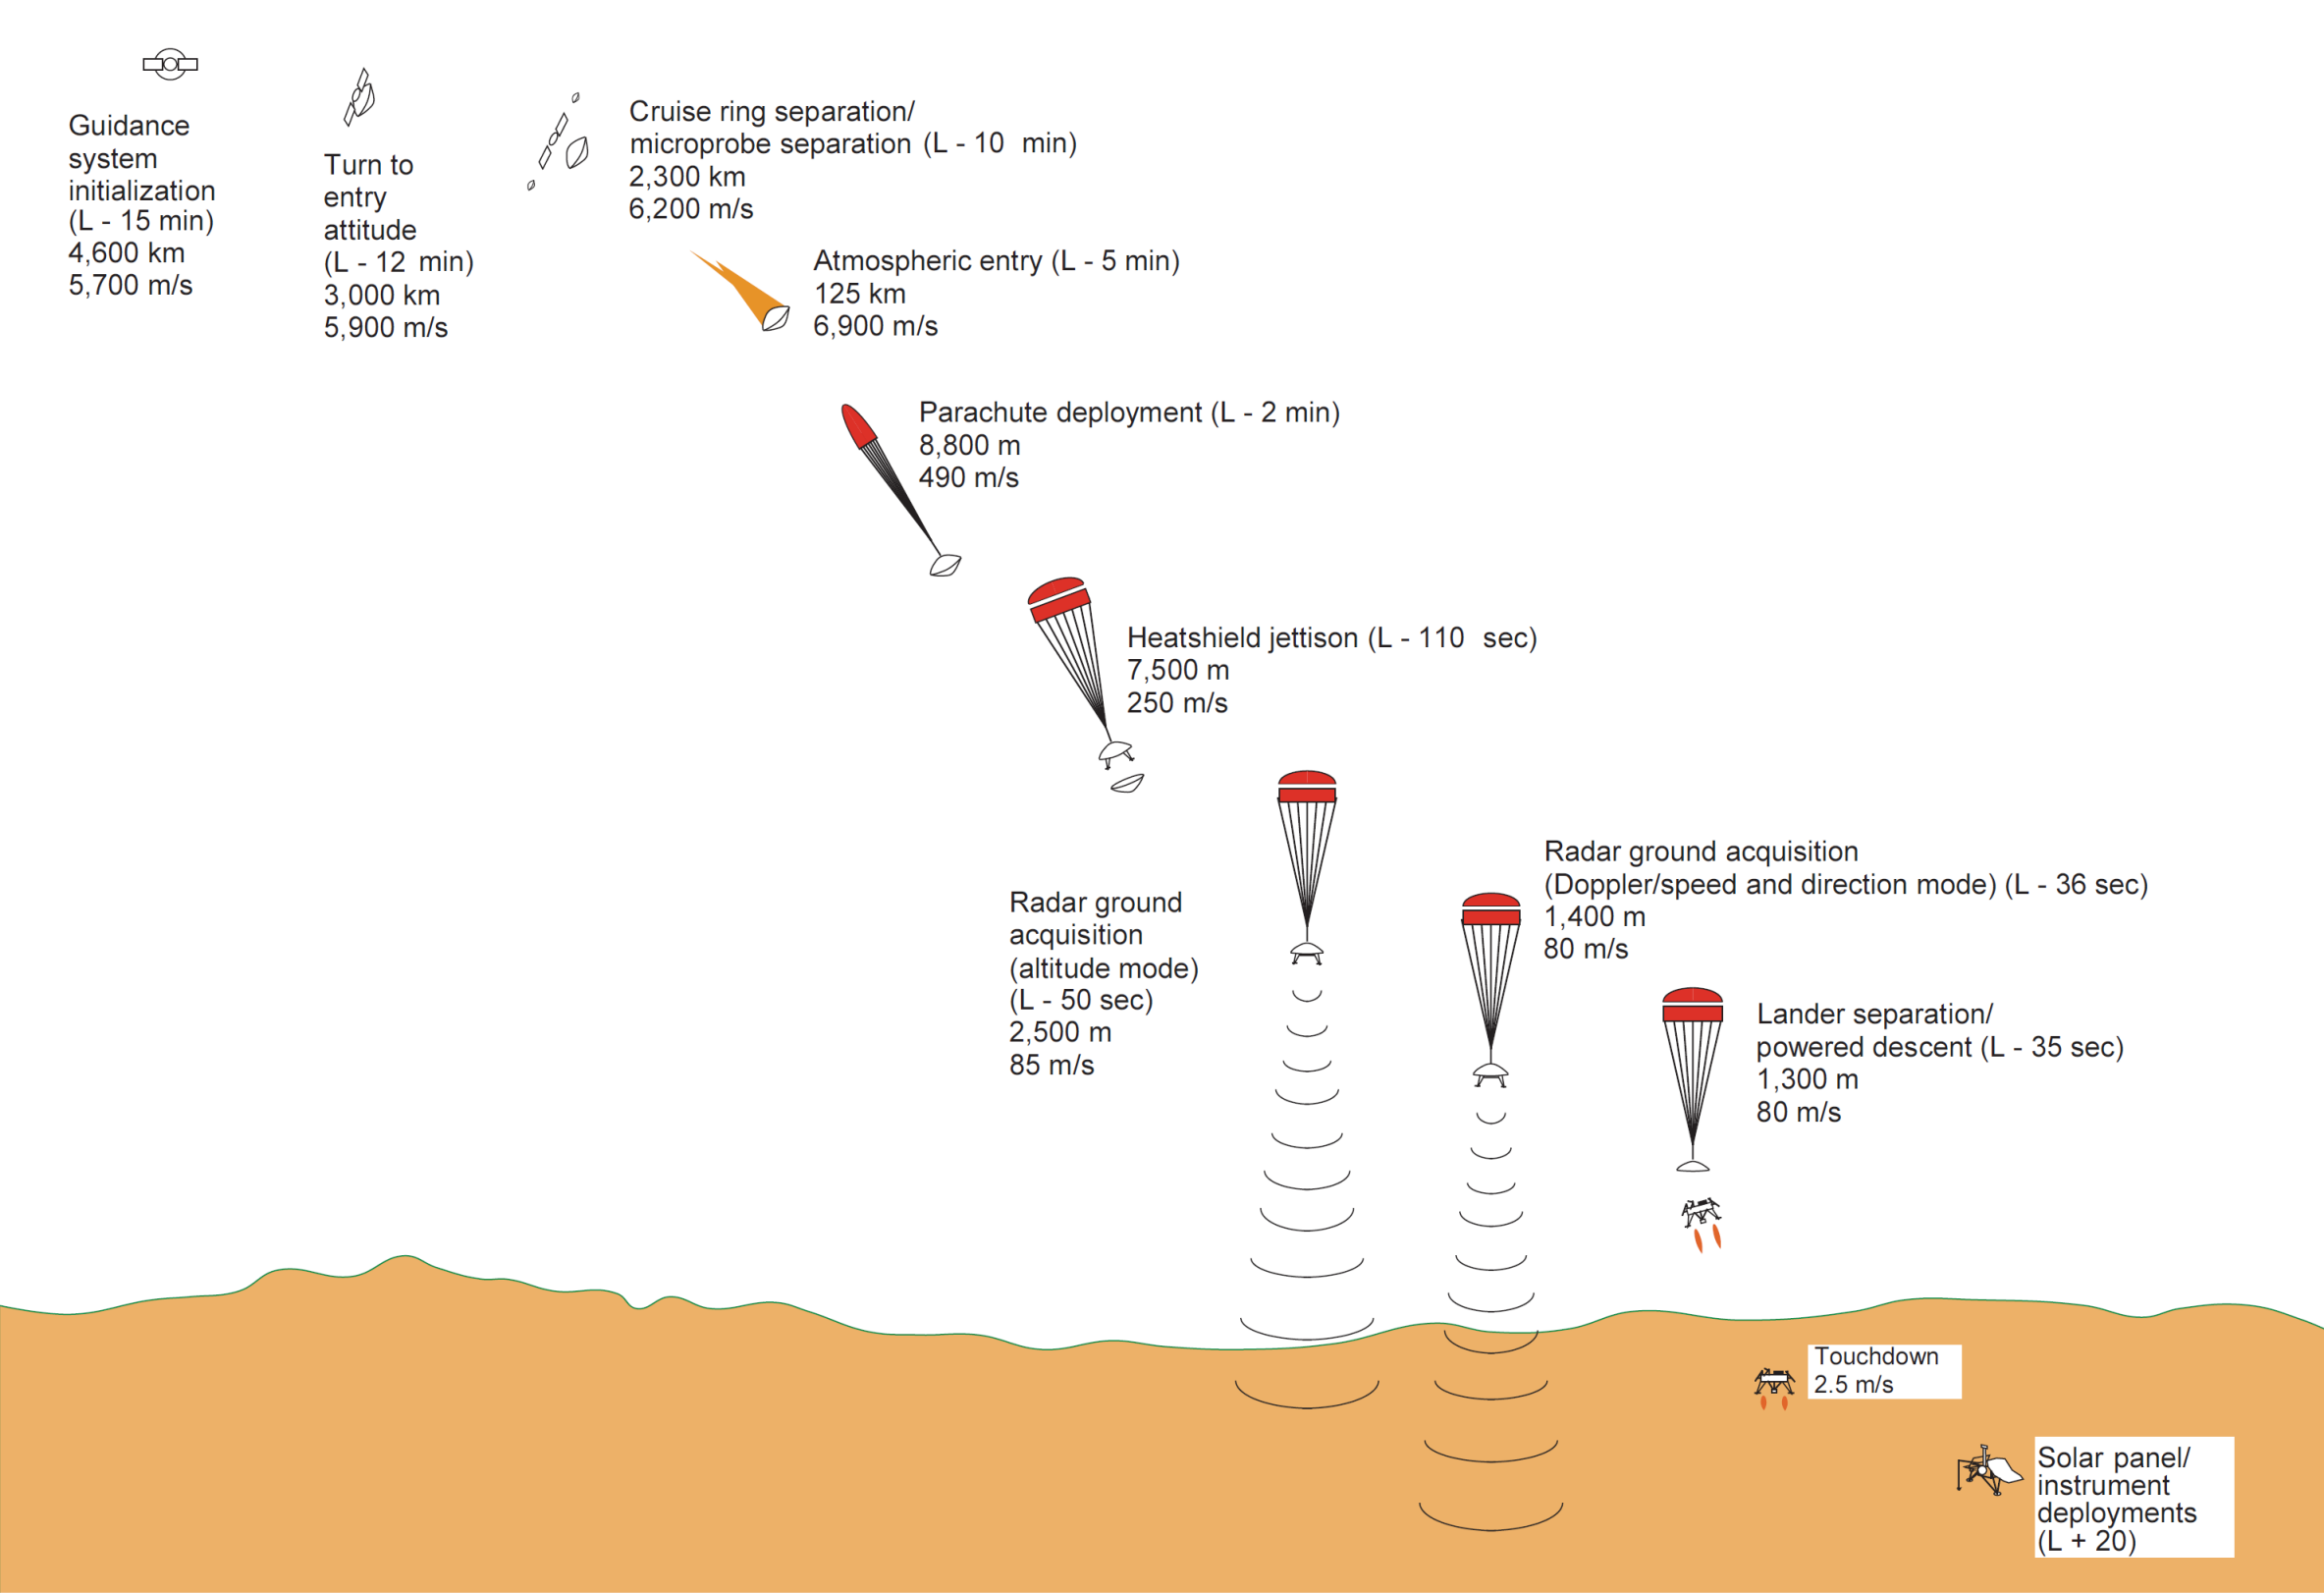 Mars Polar Lander Fuse Box Diagram Of Landing Prodedures As It Would Pass Through The Atmosphere And